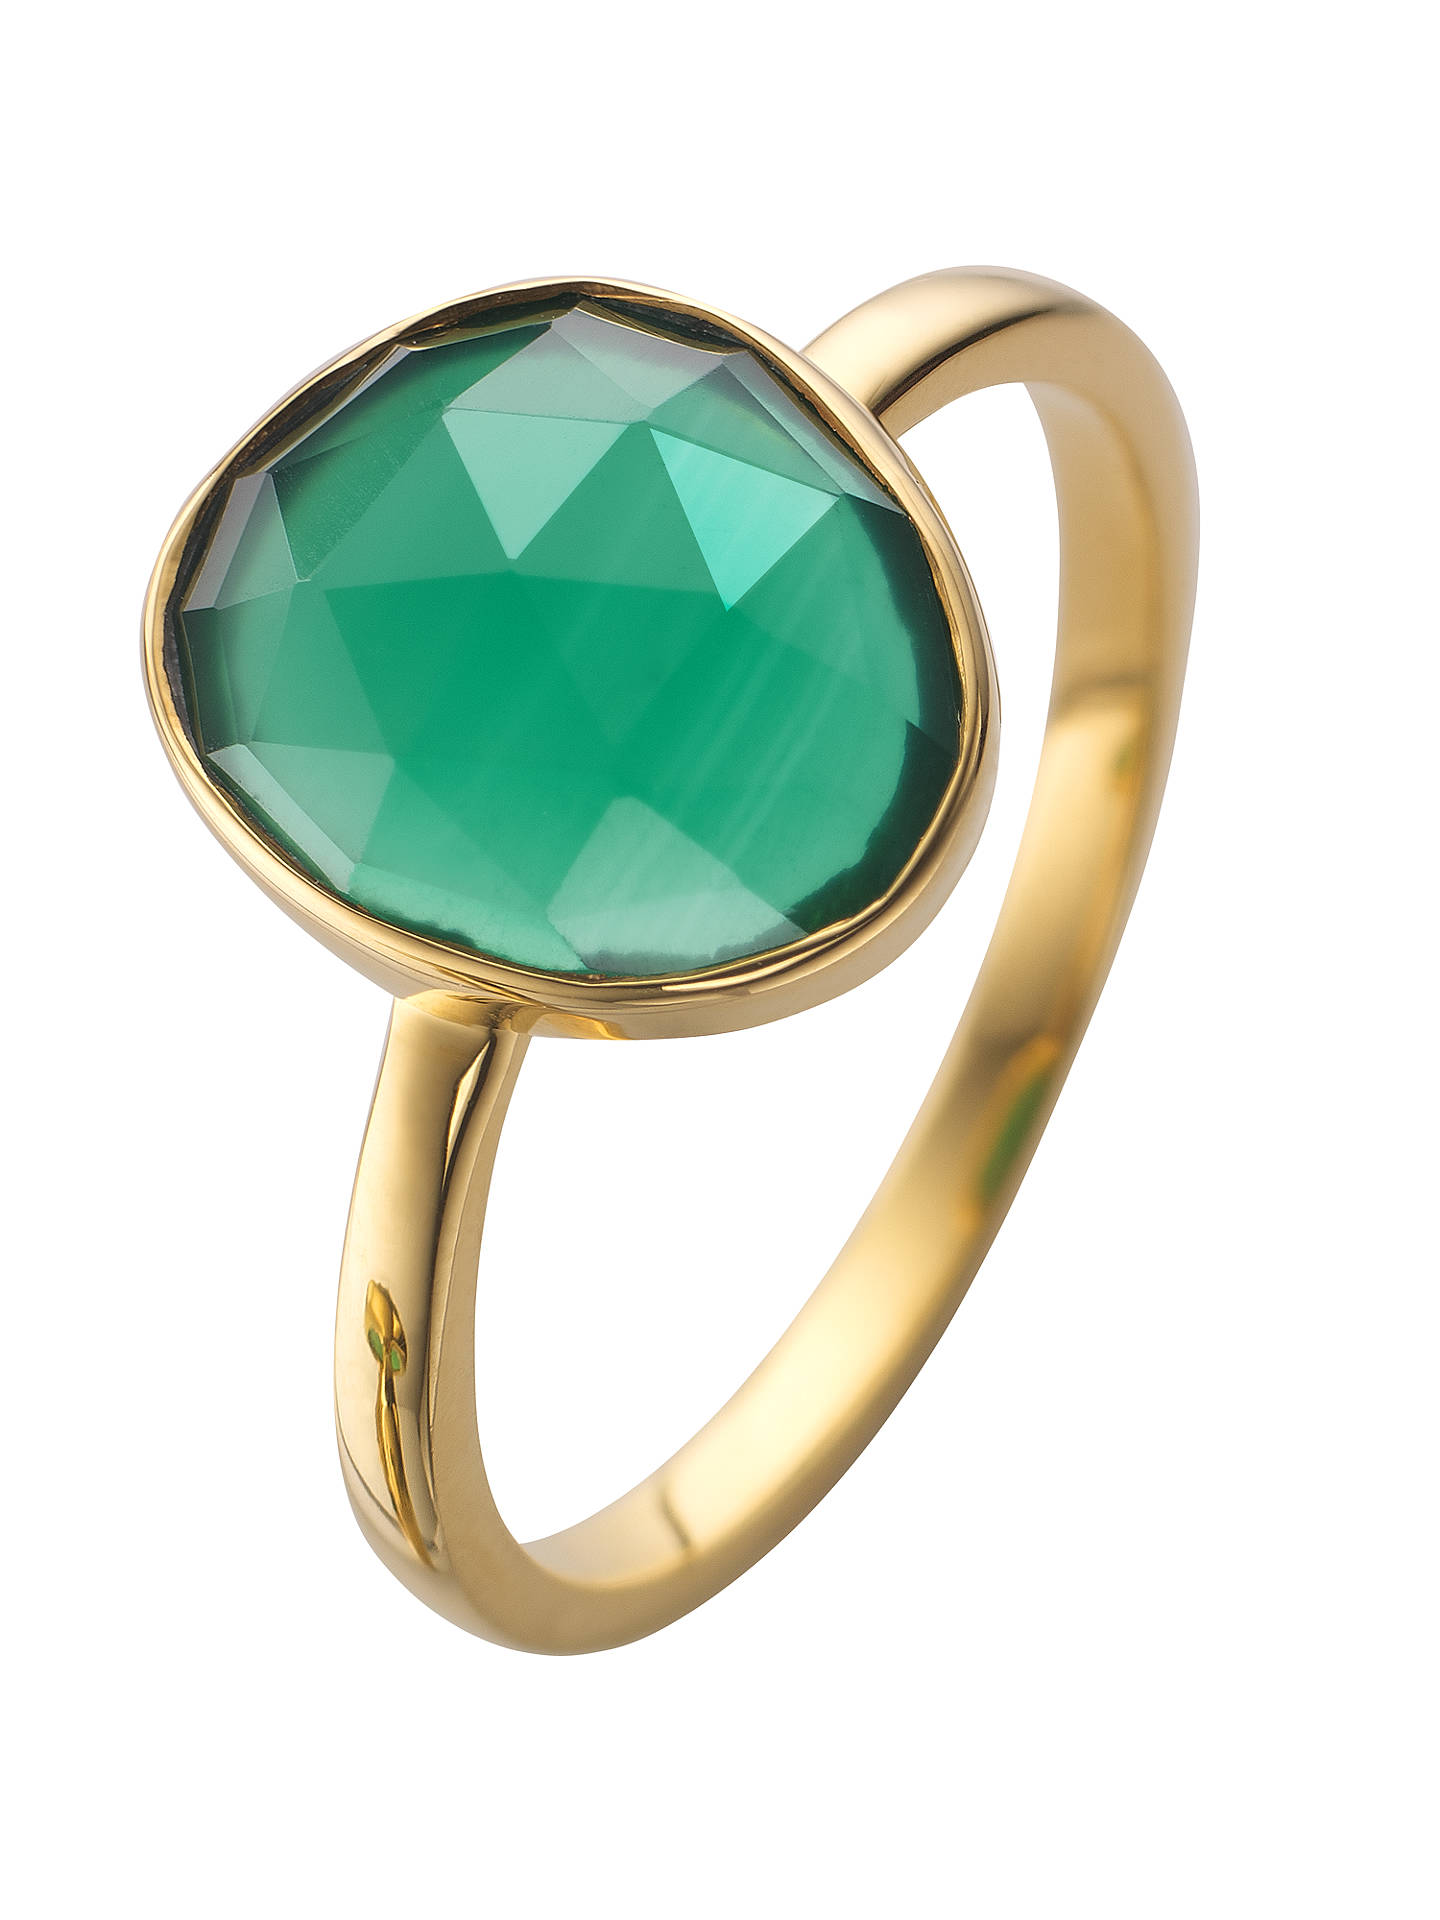 c6e897e44f950 John Lewis Gemstones Gold Plated Semi-Precious Stone Ring at John ...